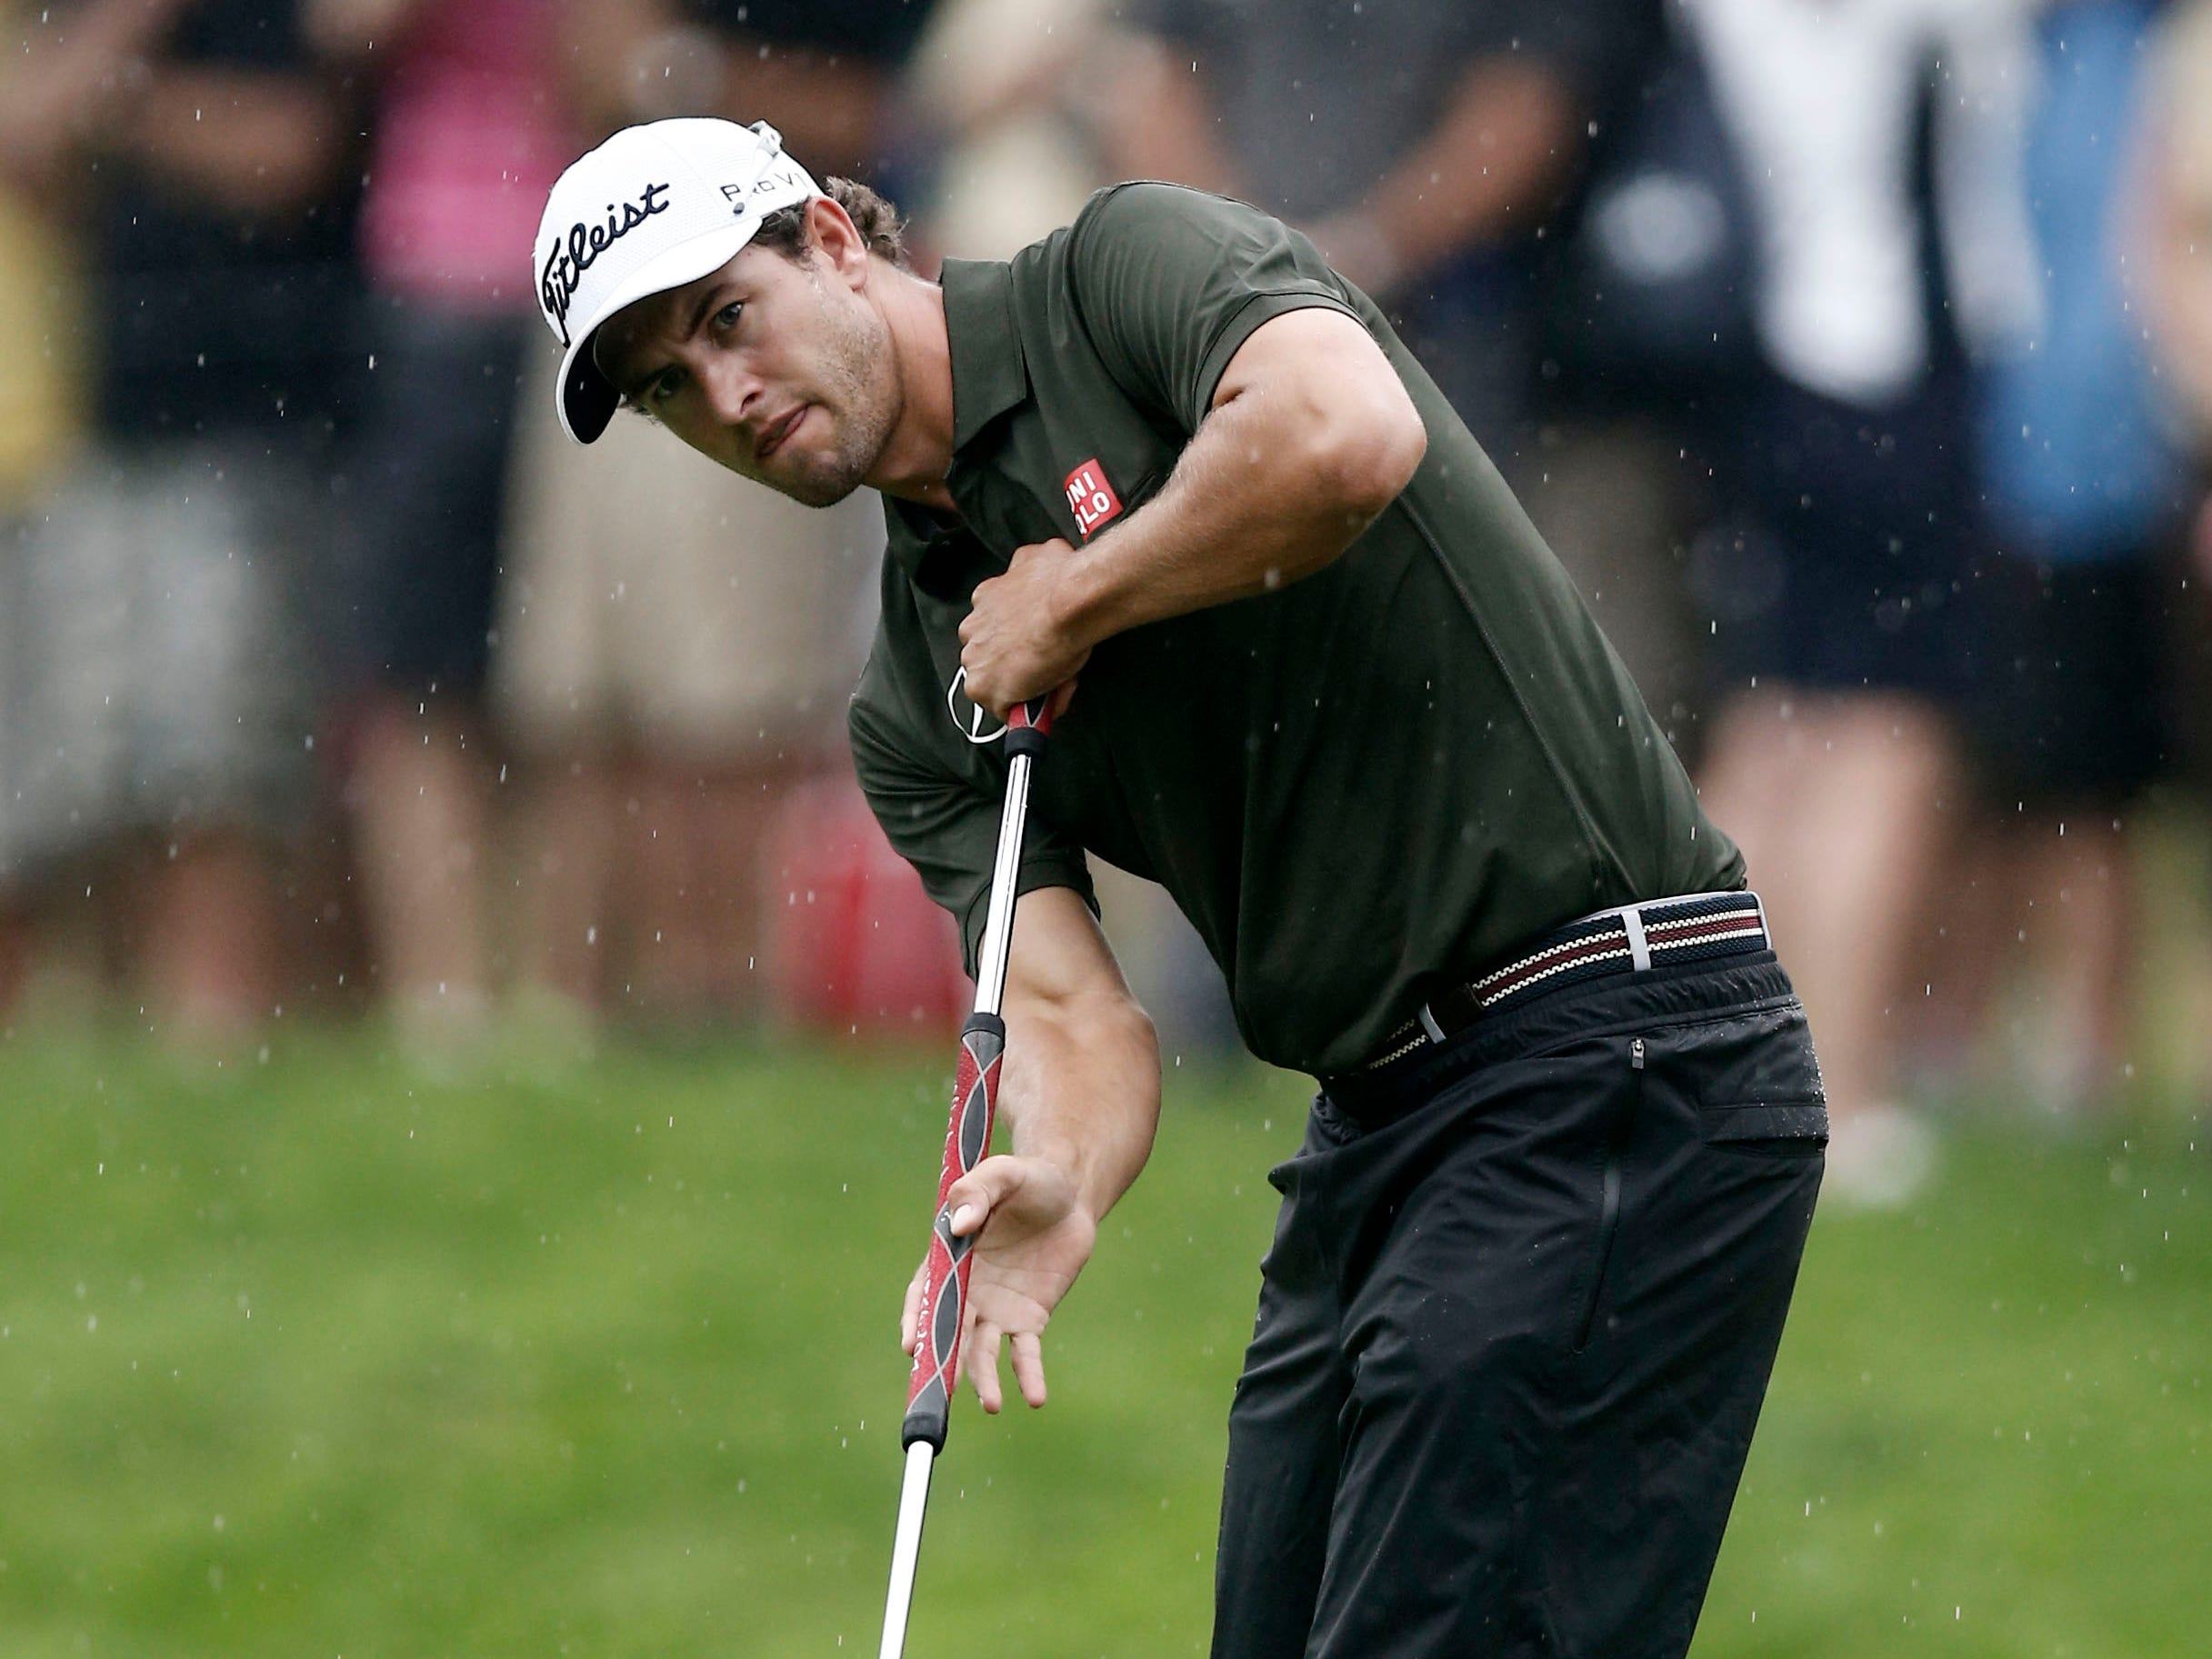 Adam Scott eyes his putt on the 11th green.